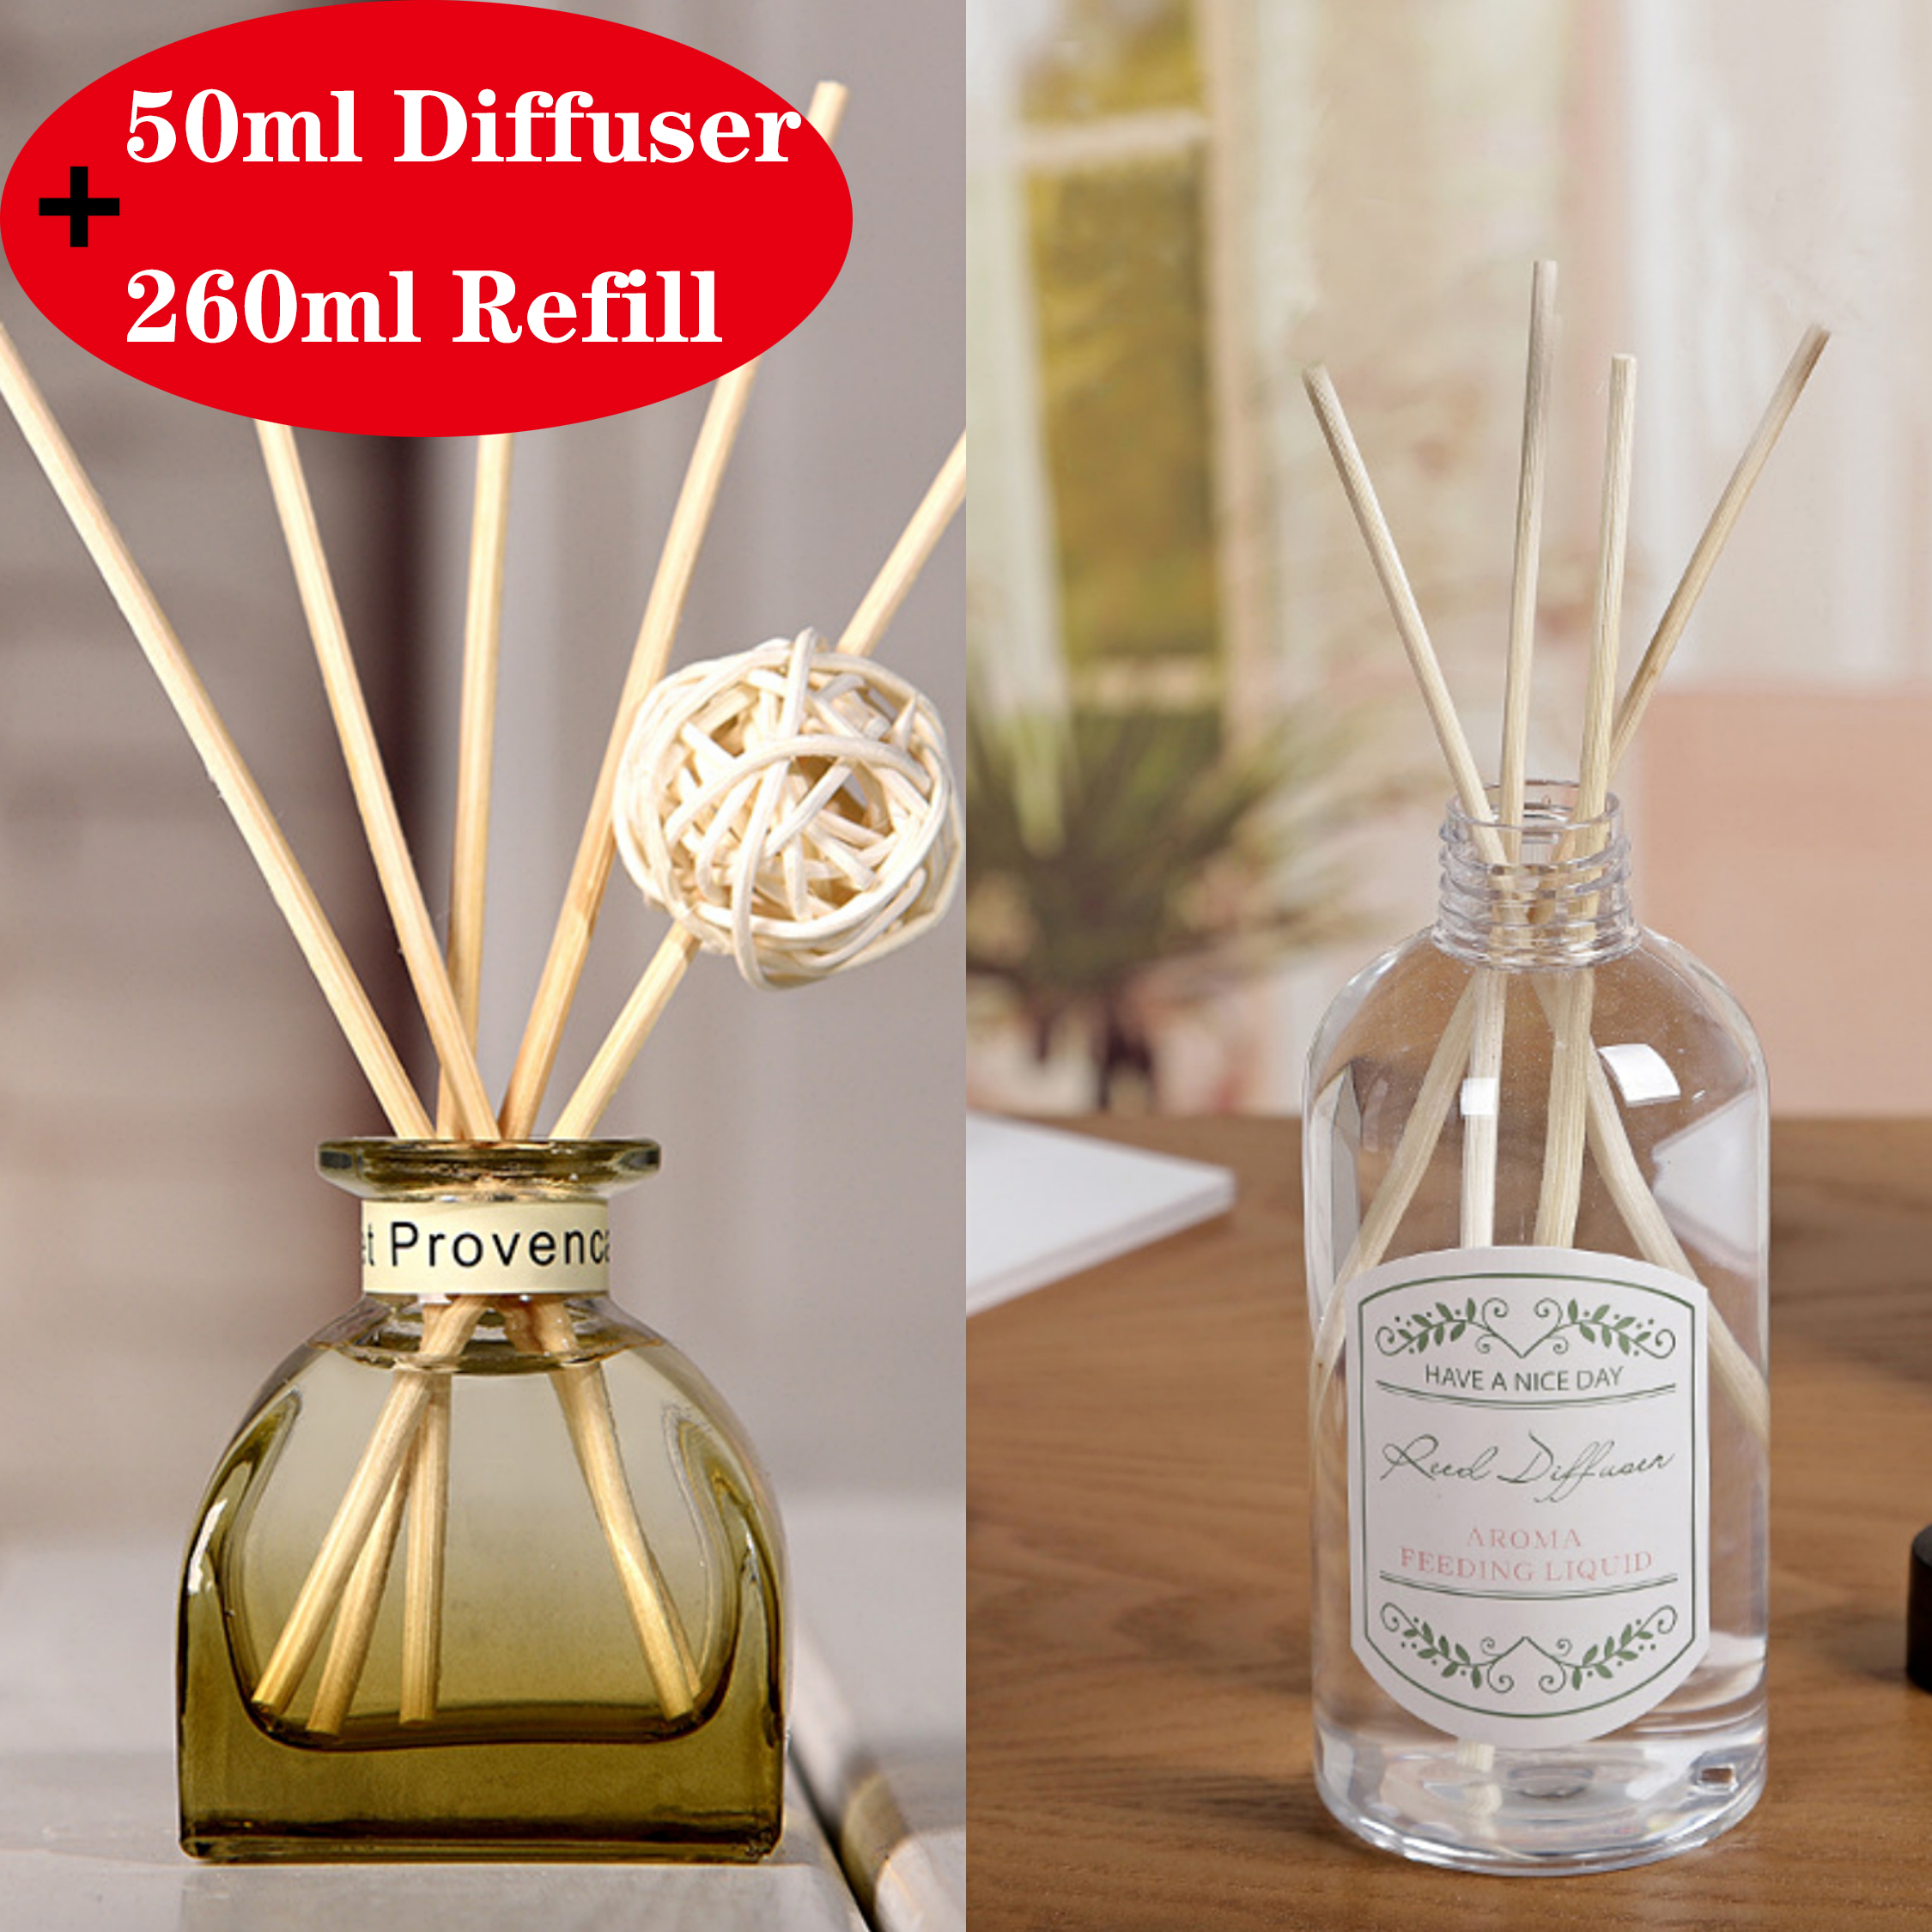 50ml+260ml Reed Diffuser Replacement Fireless Aroma Home Fragrance With Natural Rattan Sticks For Living Room Office,etc.